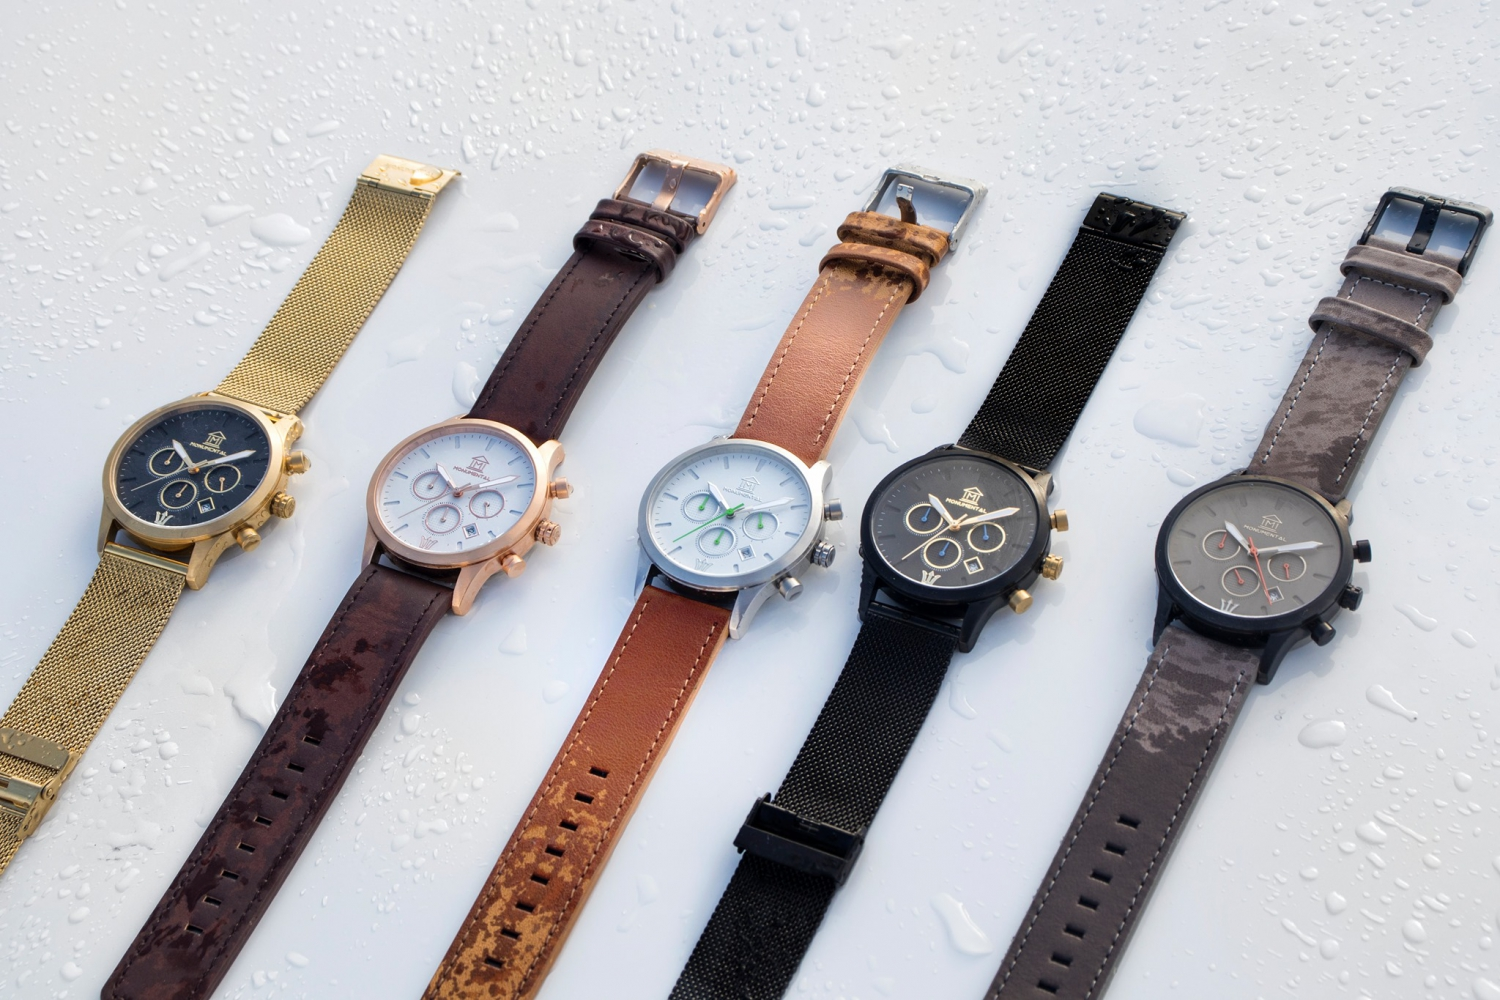 Monumental Watches